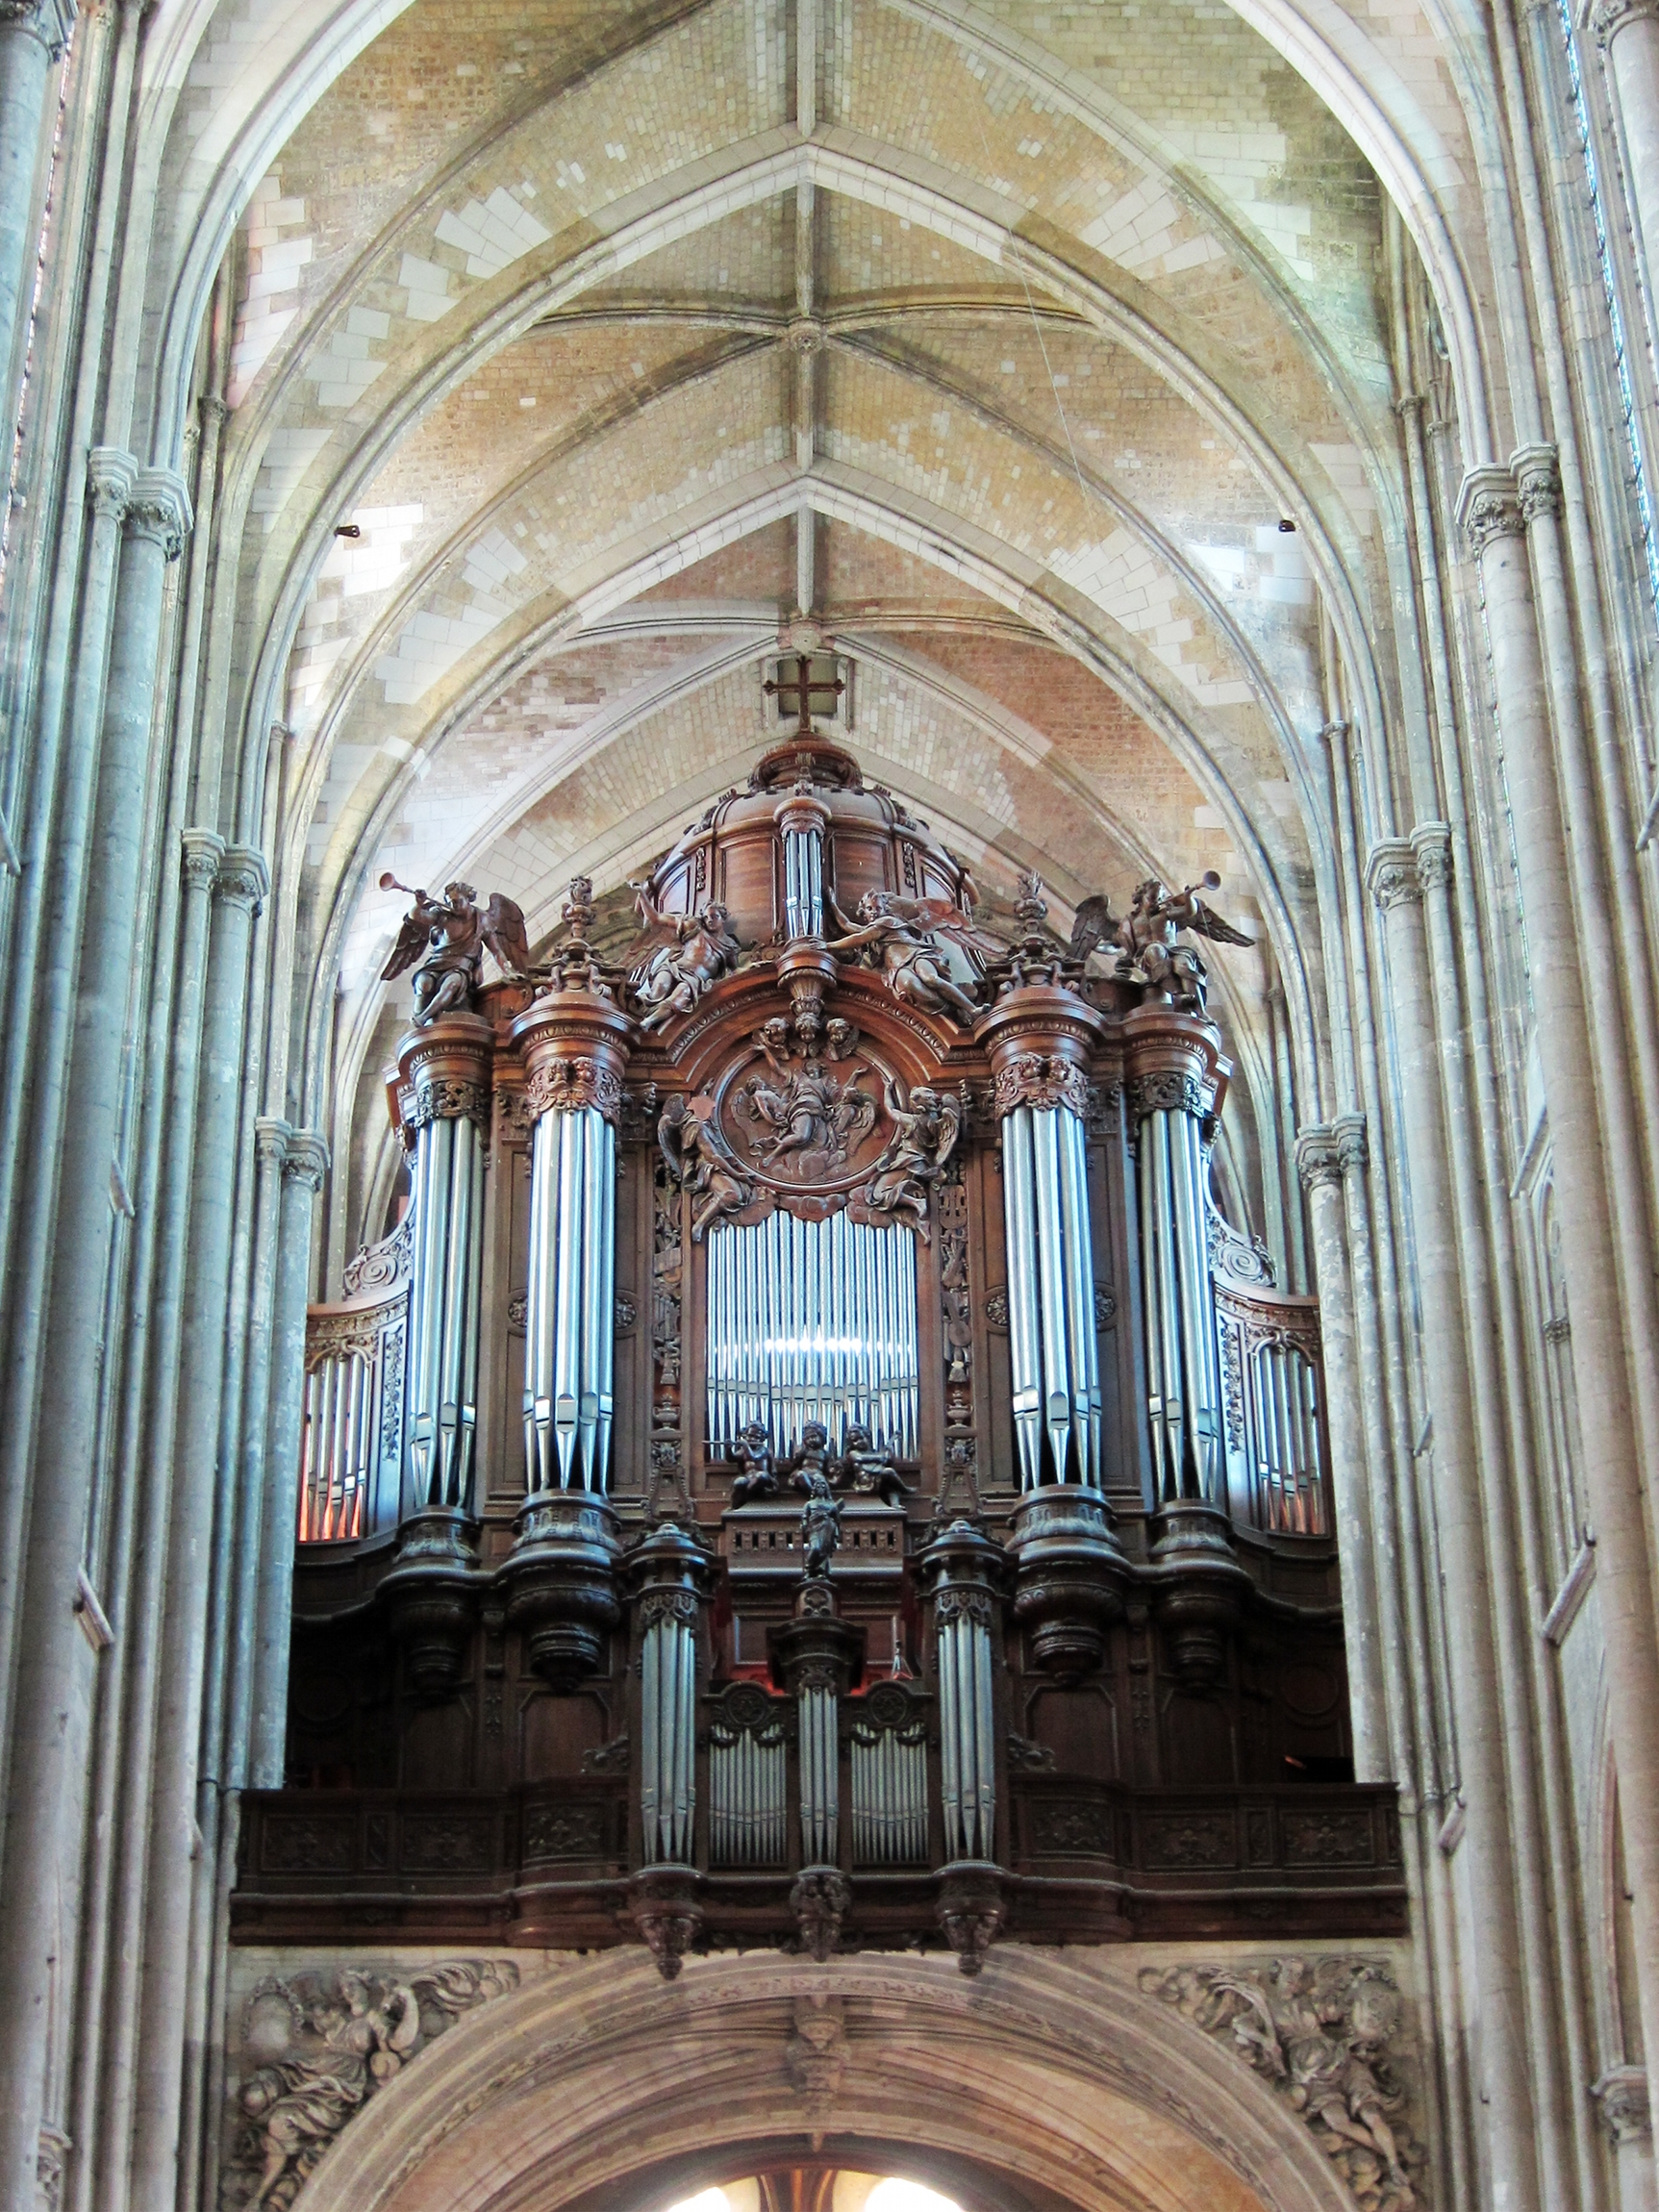 orgel van de basiliek van saint quentin wikipedia. Black Bedroom Furniture Sets. Home Design Ideas